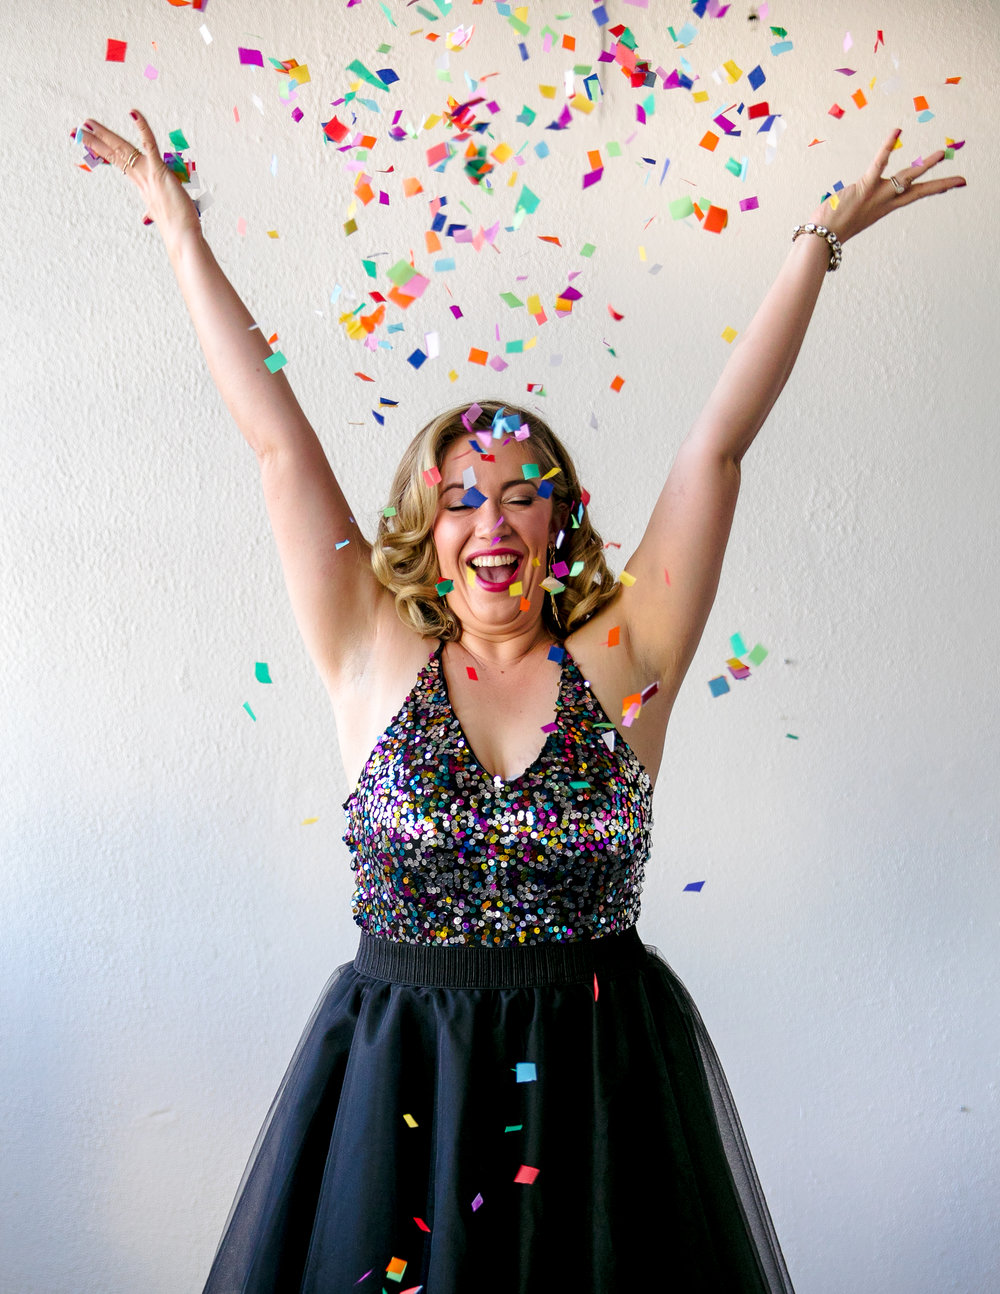 san jose california makeup artist kim baker beauty celebrates 30th birthday with a fun photoshoot wearing tulle skirt and tossing rainbow confetti